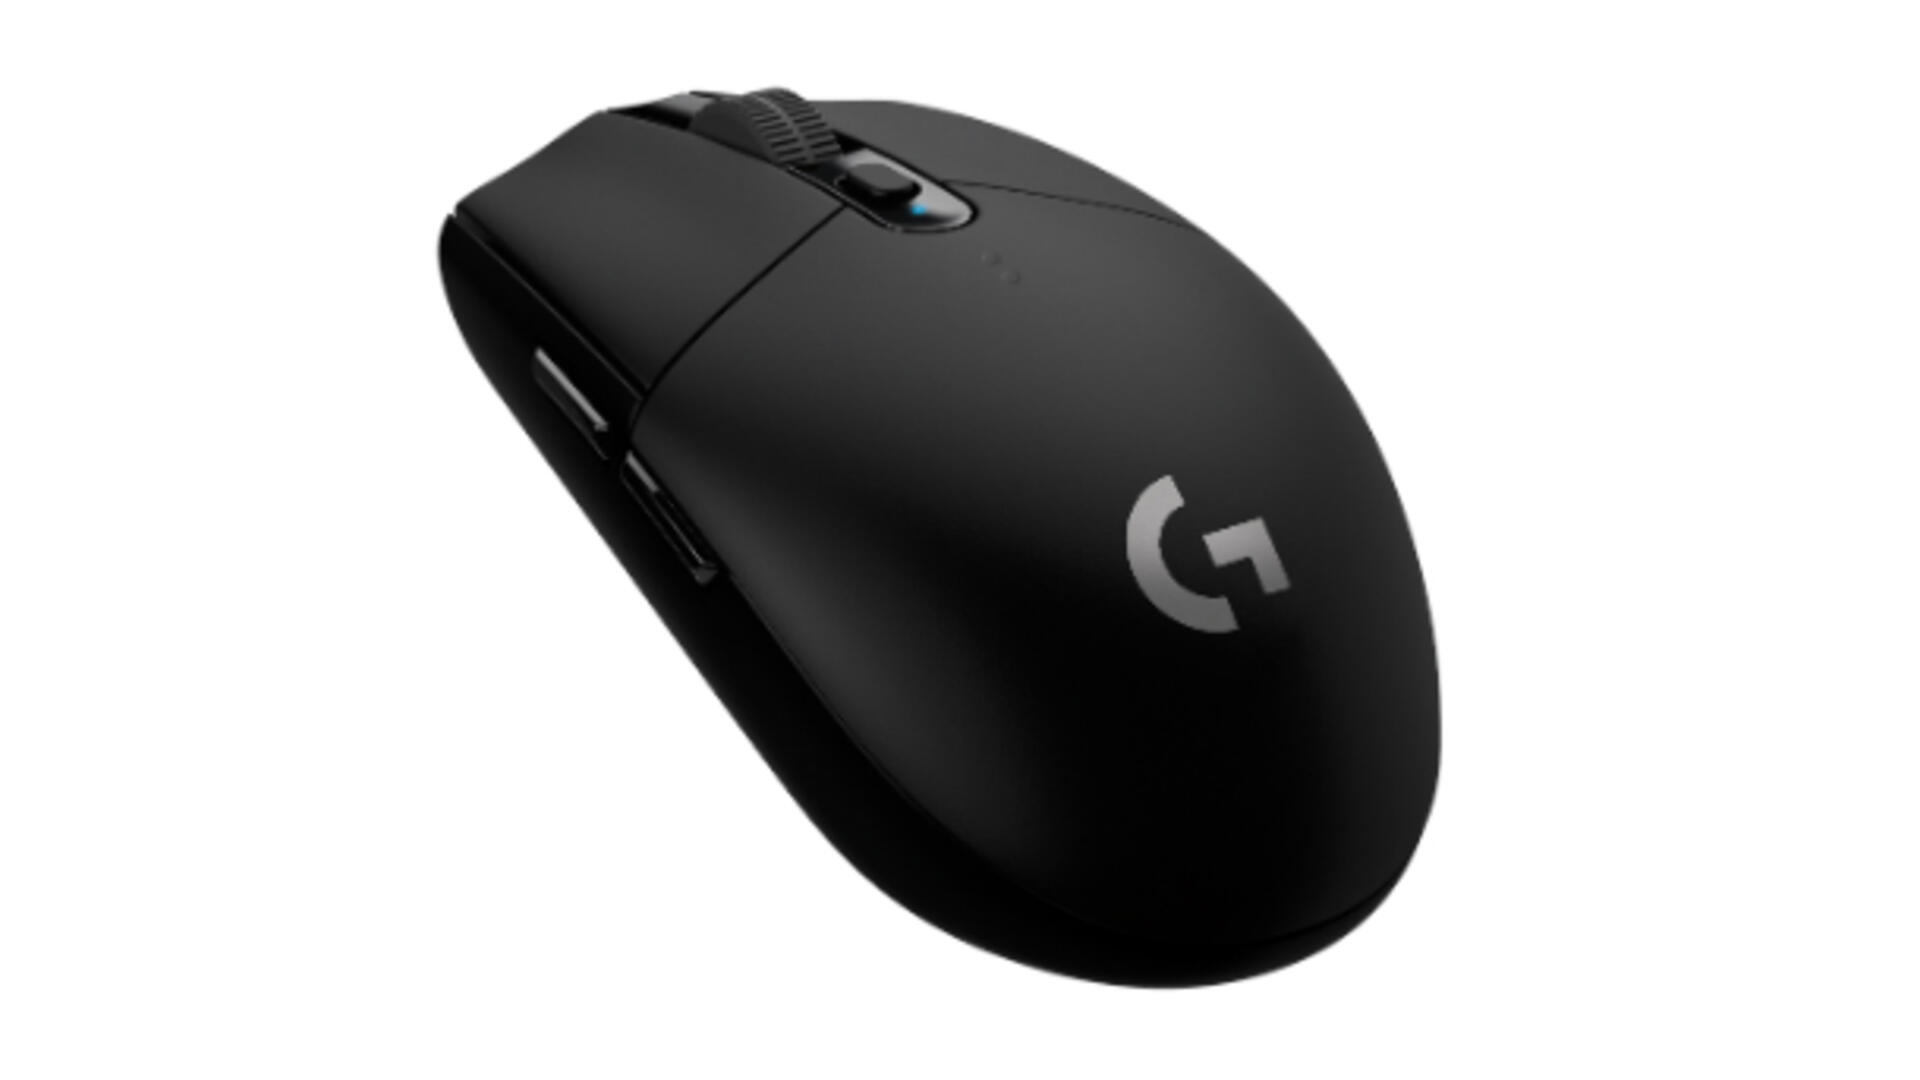 Logitech G305 Offers Gaming Performance in a Portable Package